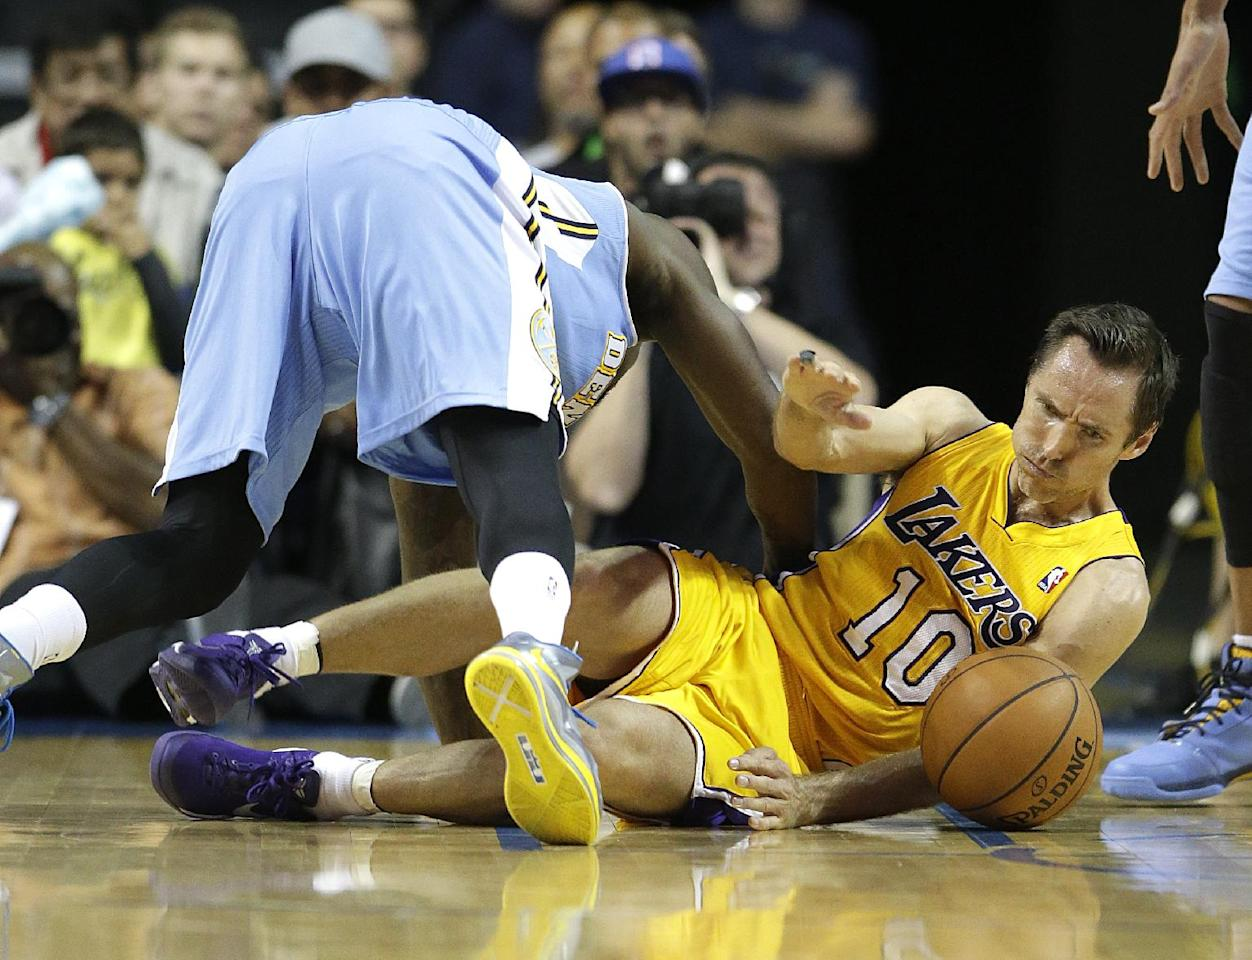 Denver Nuggets' Randy Foye, top, and Los Angeles Lakers' Steve Nash fall to the court as they fight for a loose ball in the second half of an NBA preseason basketball game on Tuesday, Oct. 8, 2013, in Ontario, Calif. The Lakers won 90-88. (AP Photo/Jae C. Hong)